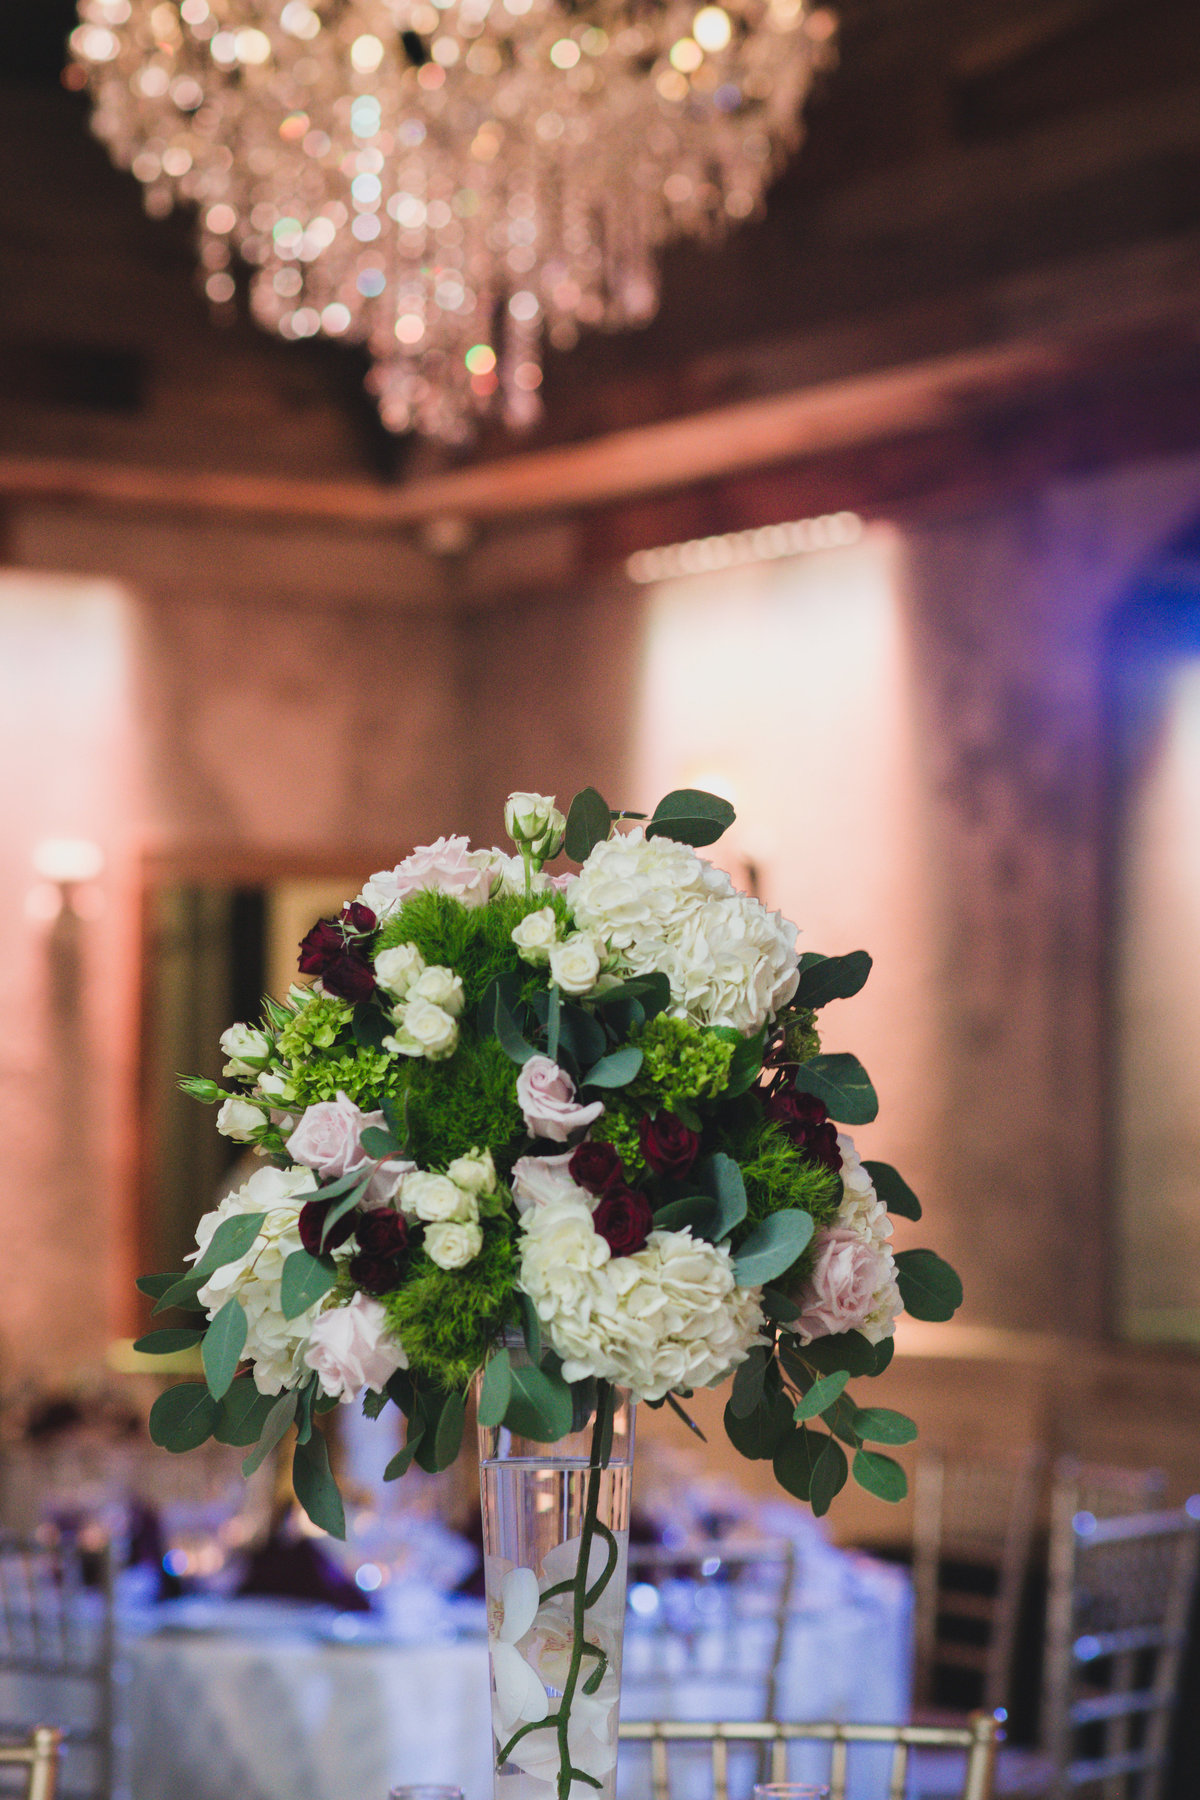 wedding photo of flower centerpiece at The Loft by Bridgeview